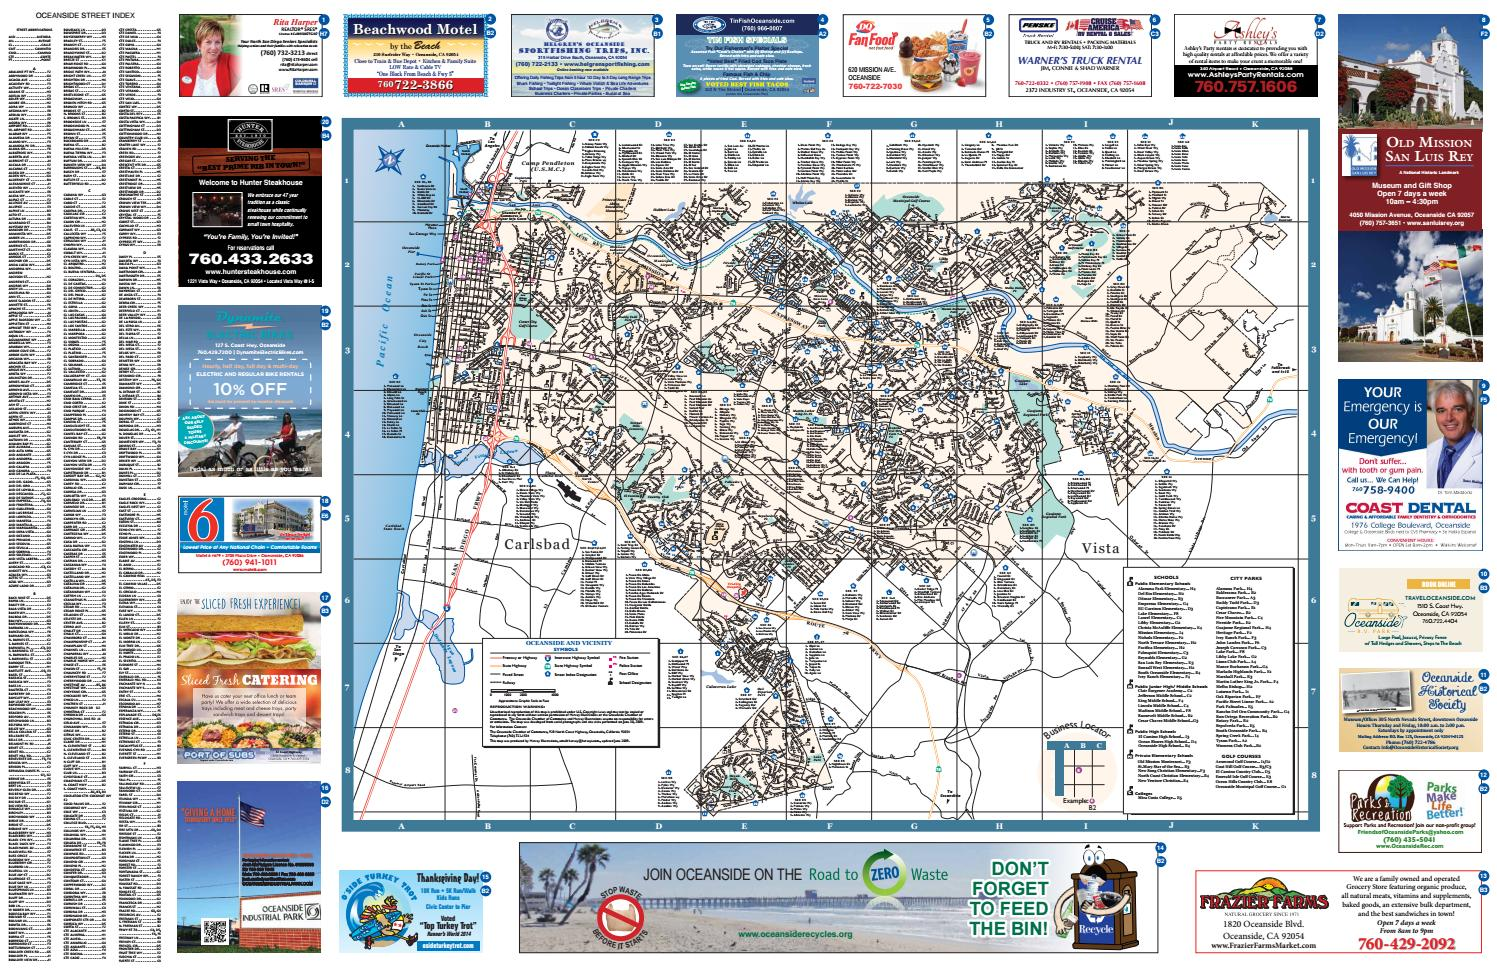 City Of Oceanside Full Size Street View Map 2015 2017 By Oceanside Chamber Of Commerce Issuu